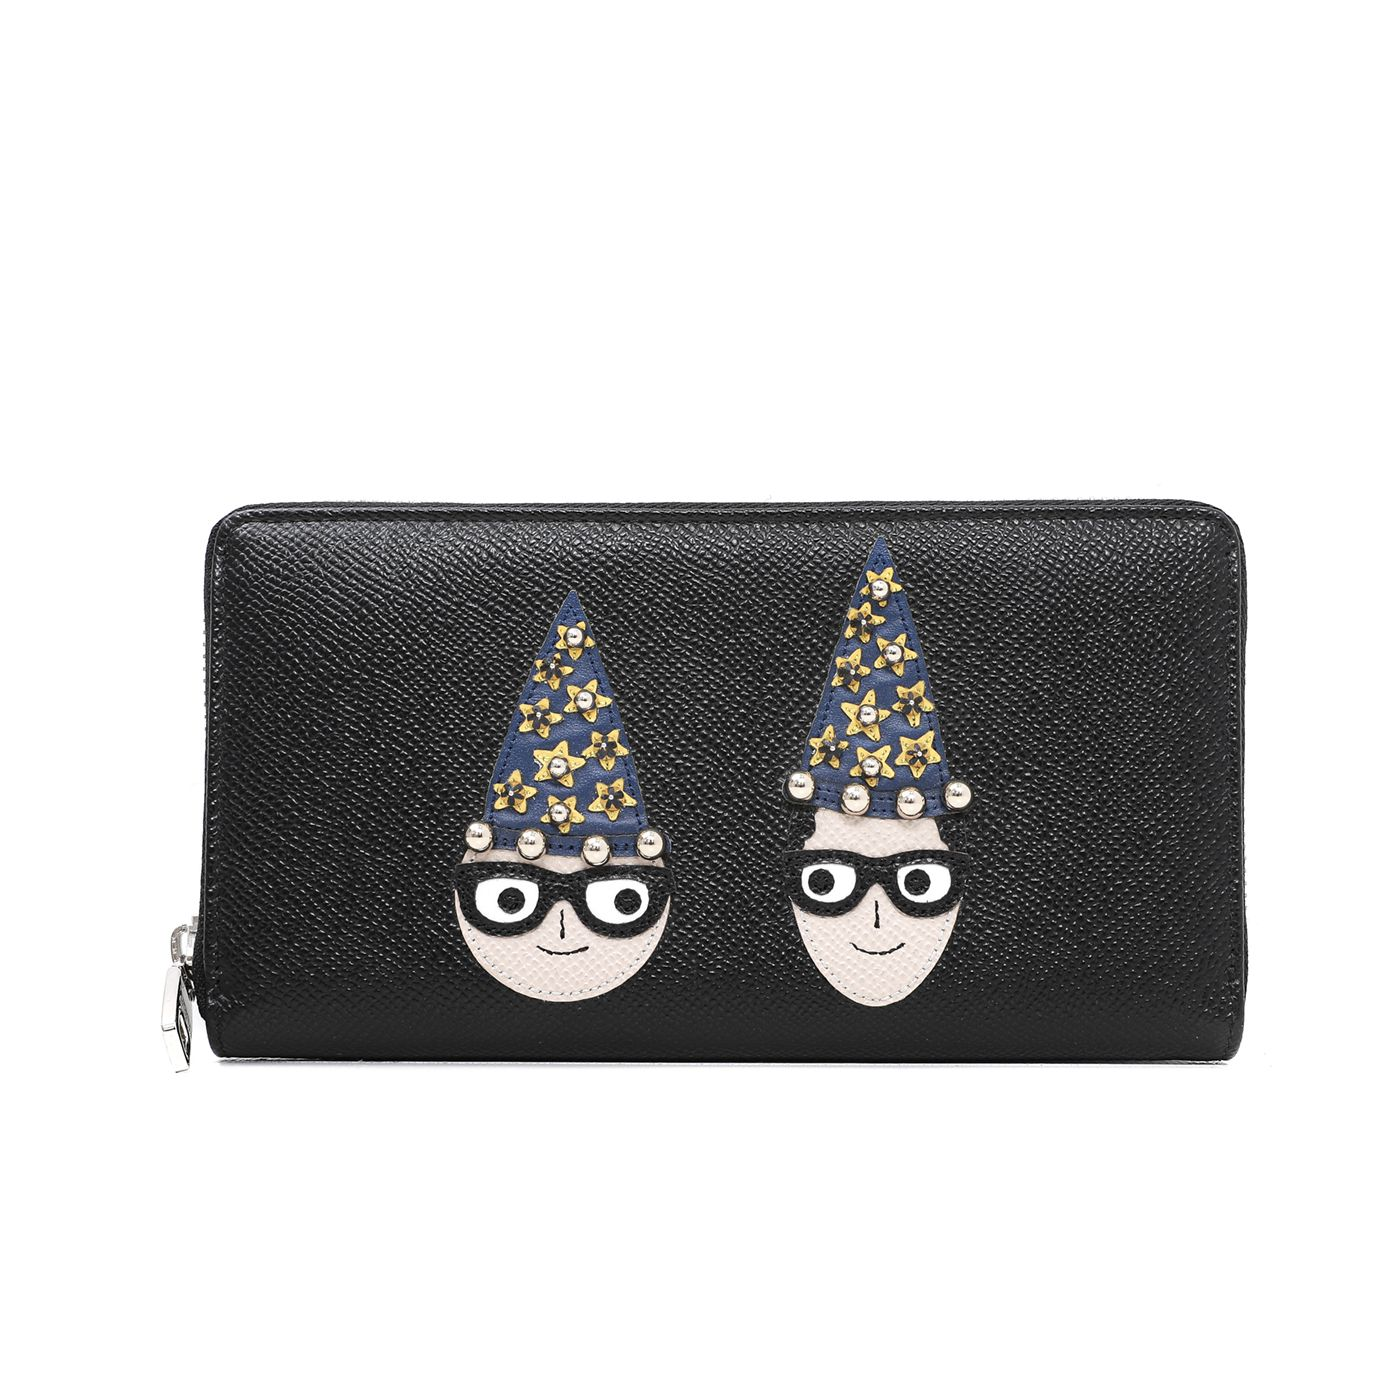 Dolce & Gabbana Black Family Zip Around Wallet